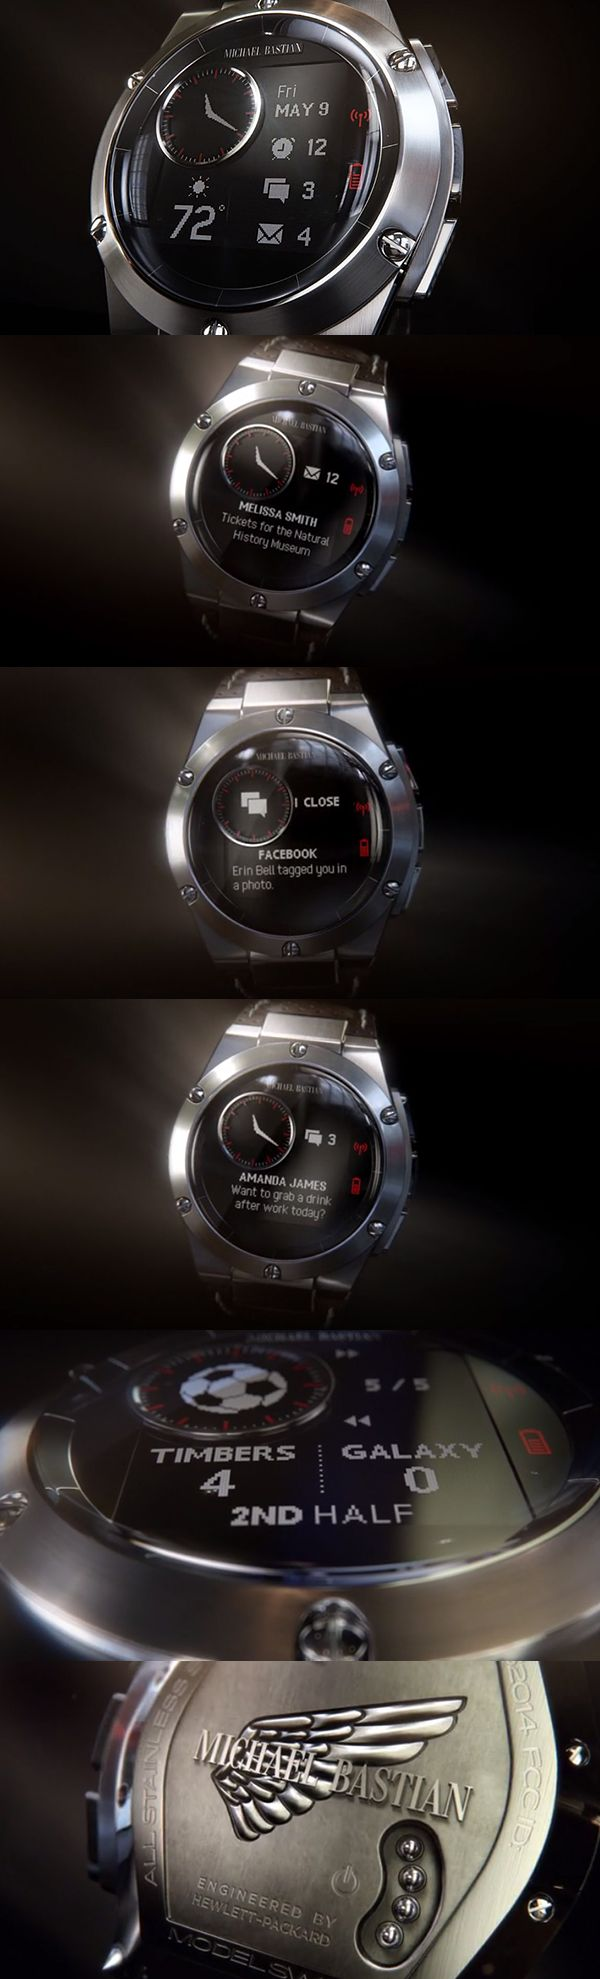 HP's fashion-friendly smartwatch designed by Michael Bastian.